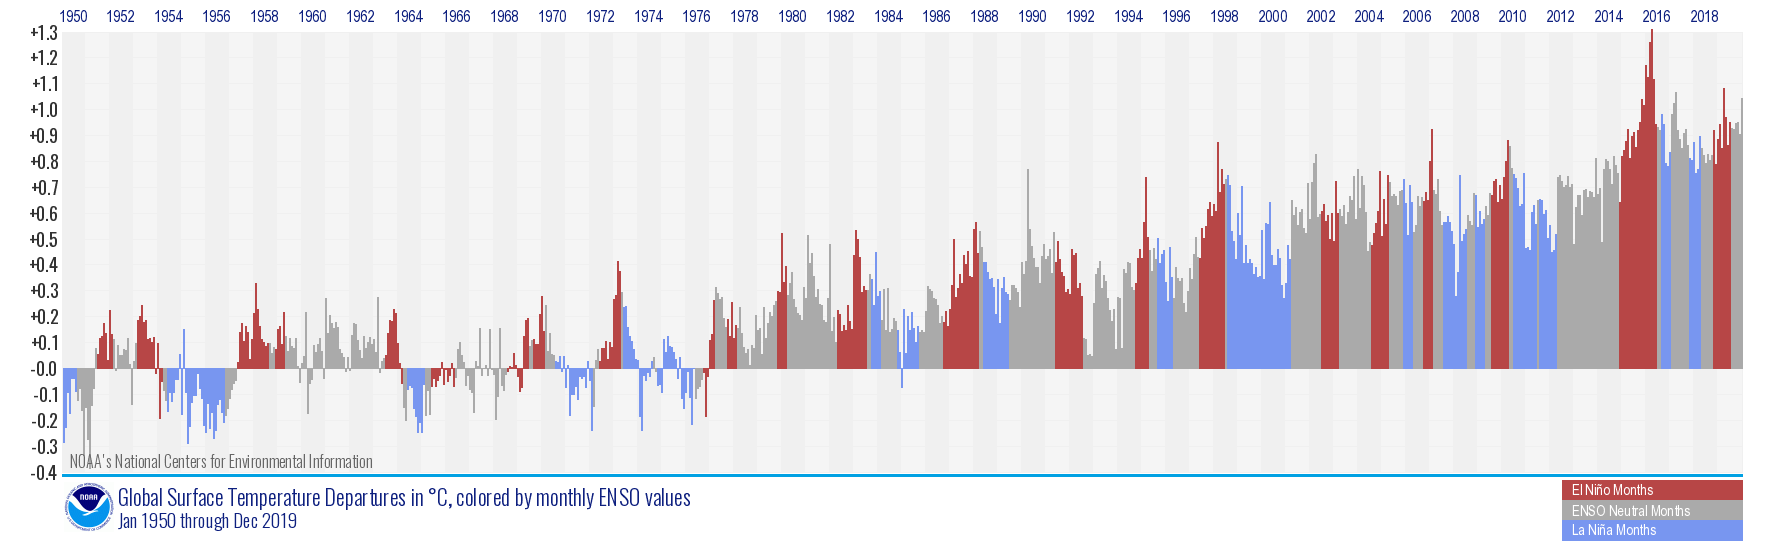 Monthly global temperature anomalies since January 1950, with ENSO status shown